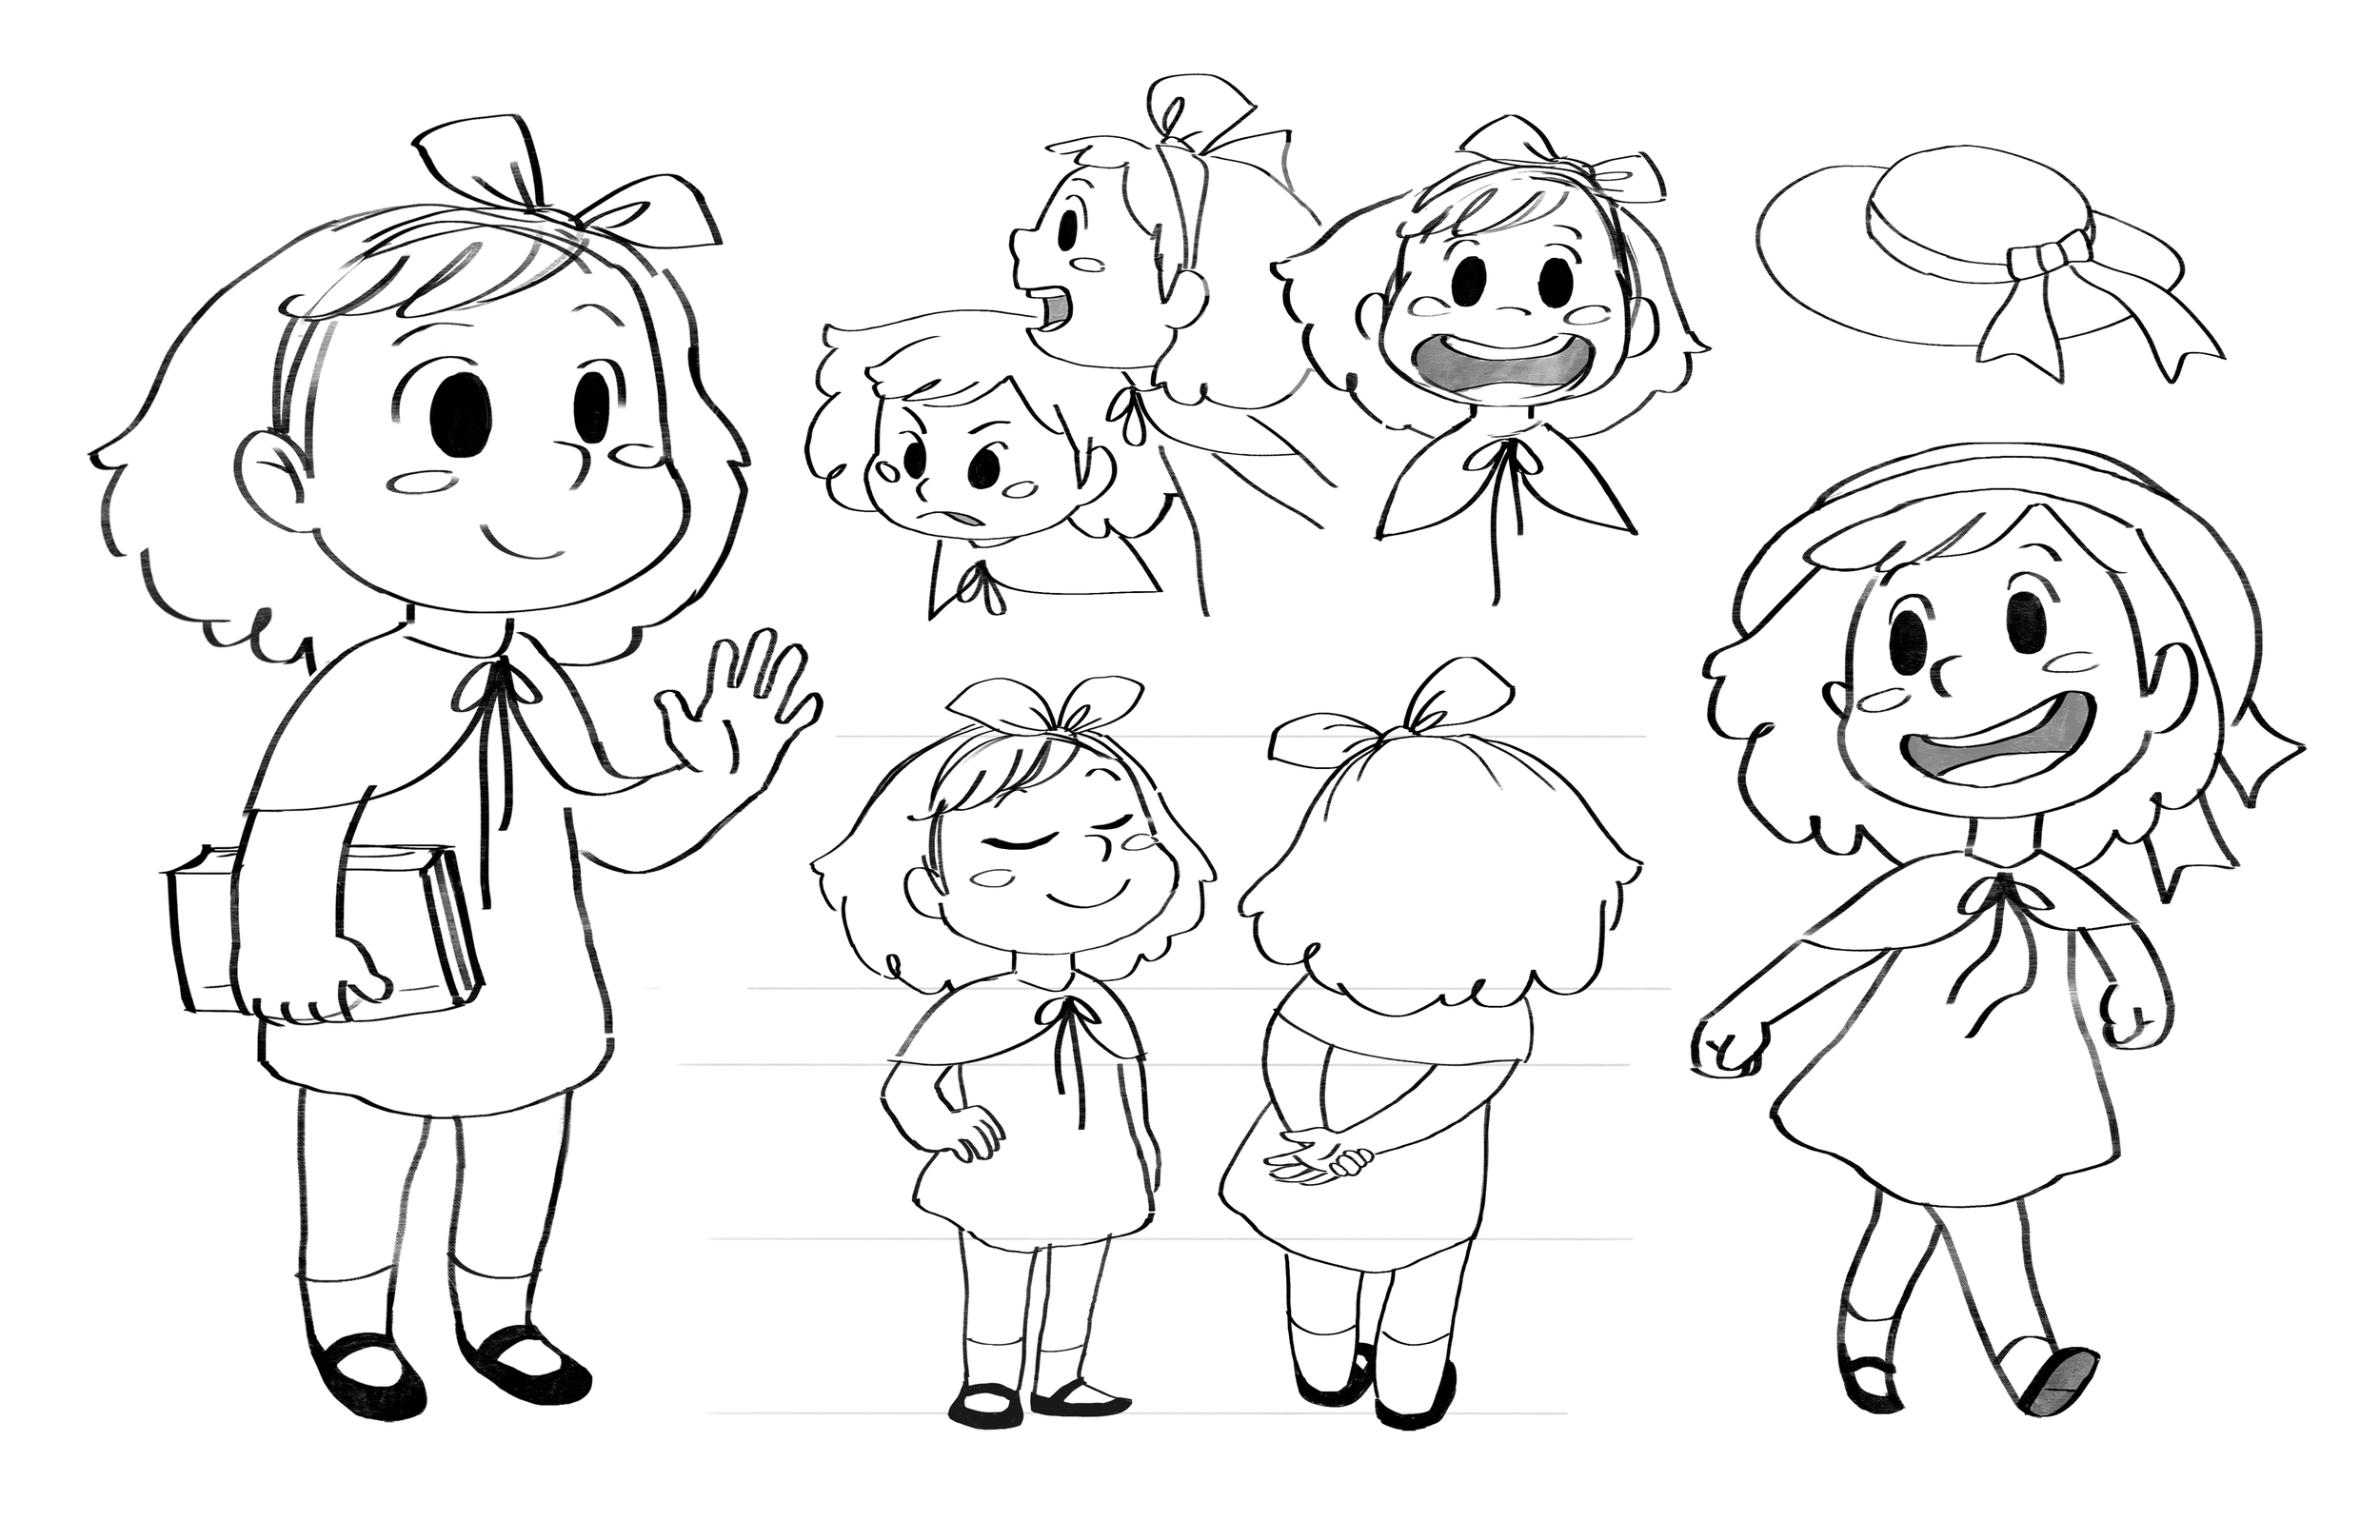 Madeline-concepts3.2.png